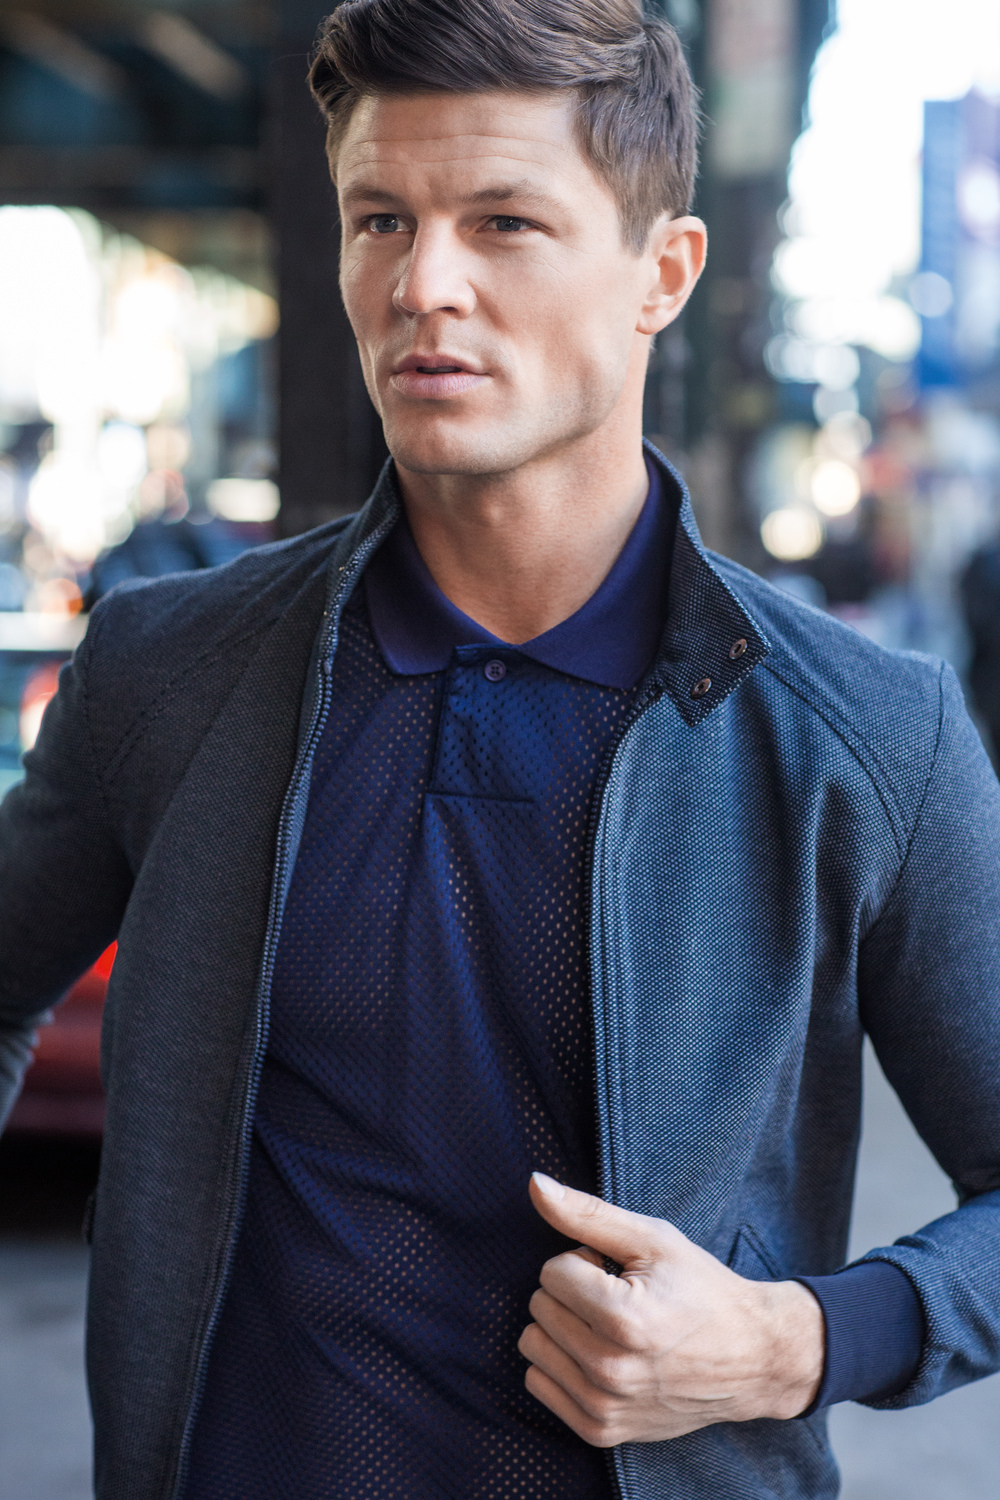 Blake Kuchta     (New York Models)  wears a jacket by Zara and mesh polo shirt by Lacoste.